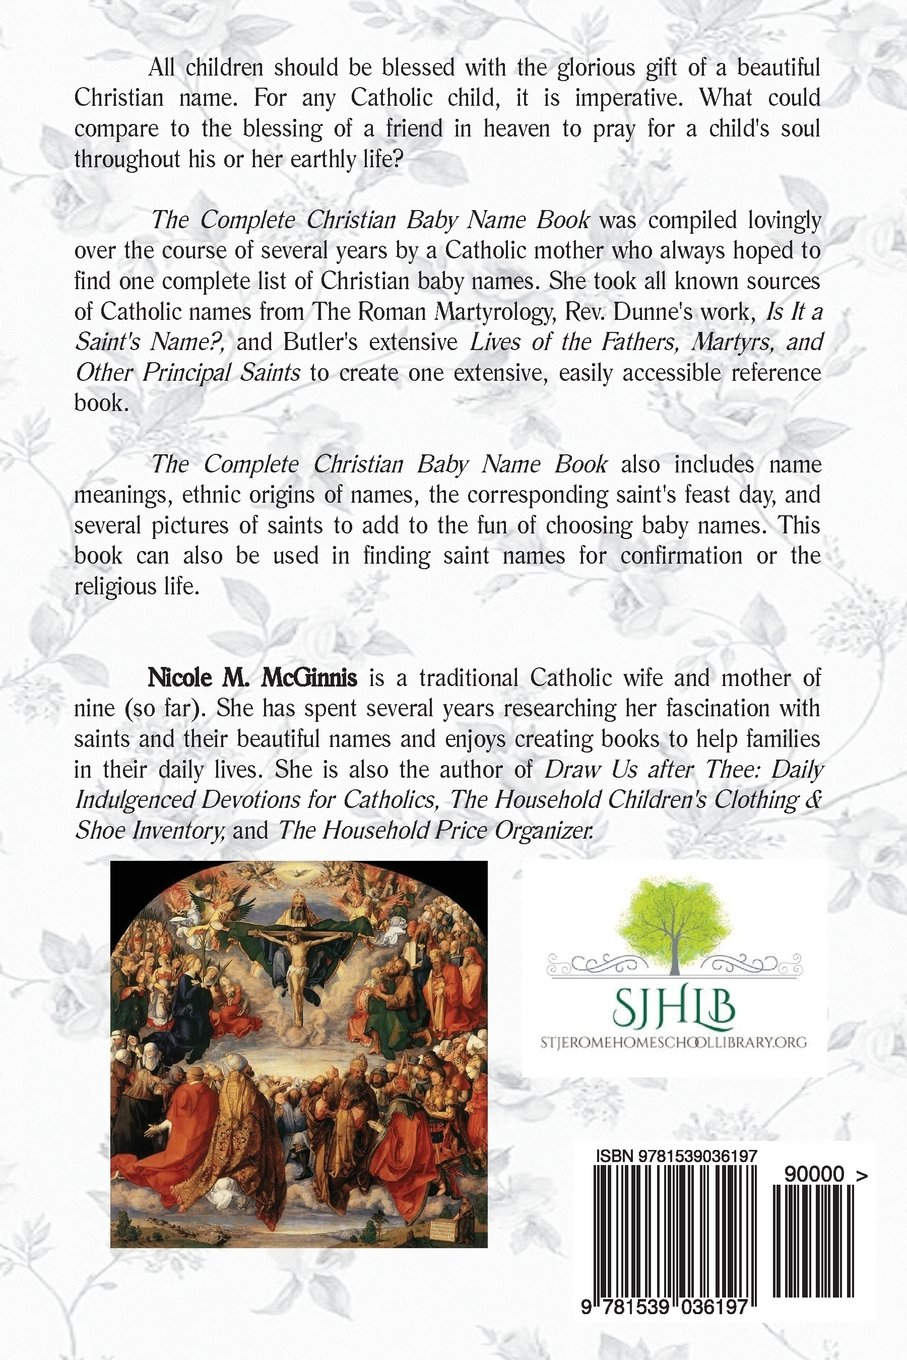 Amazon the complete christian baby name book over 4 500 catholic amazon the complete christian baby name book over 4 500 catholic names of saints angels virtues nicole m mcginnis catholicism negle Gallery